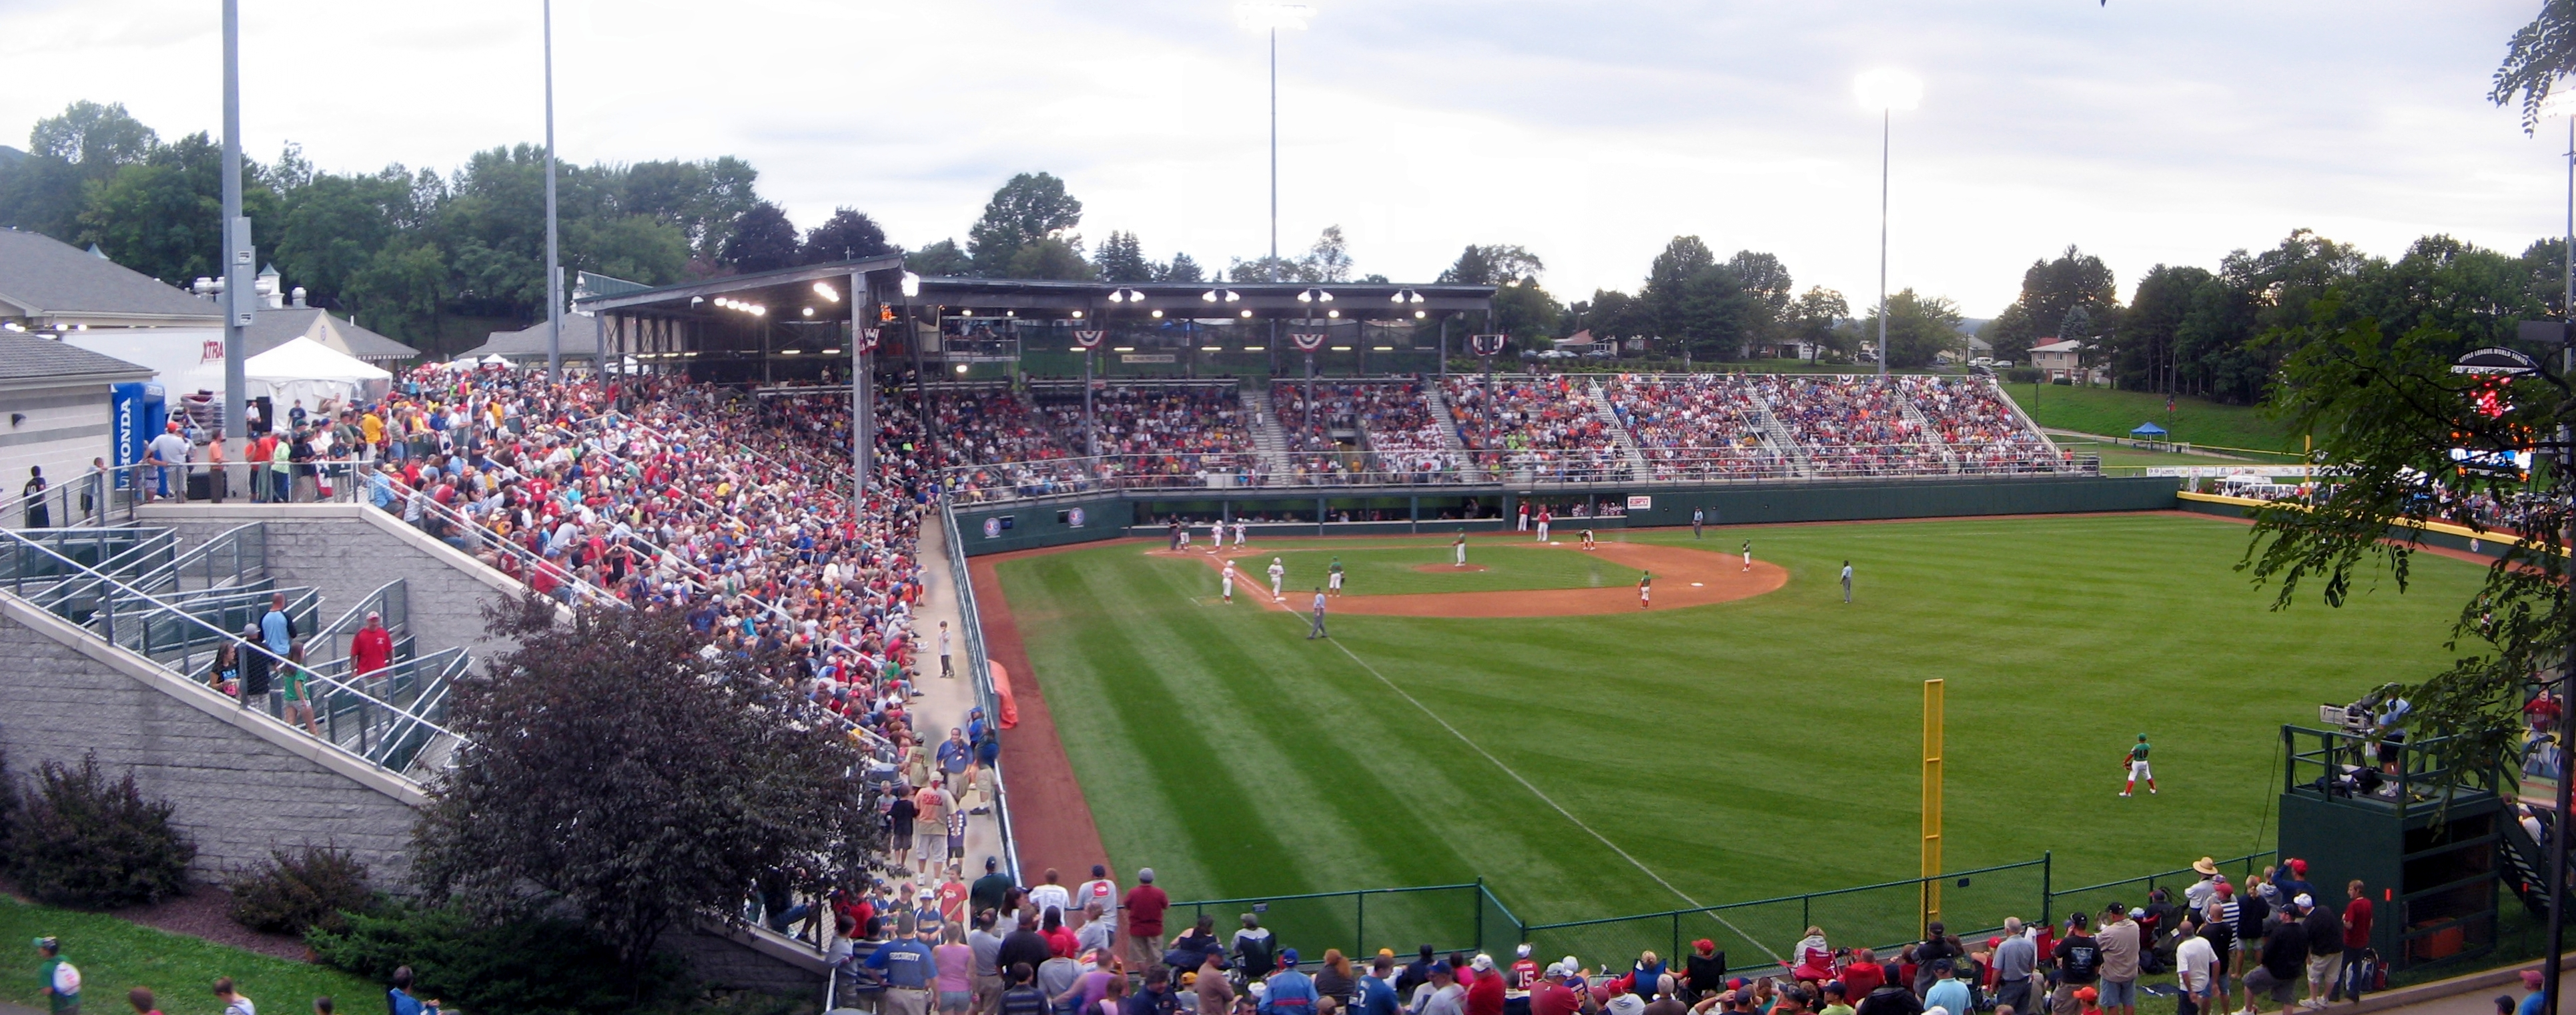 File:Little League Volunteer Stadium 1.jpg - Wikipedia ...